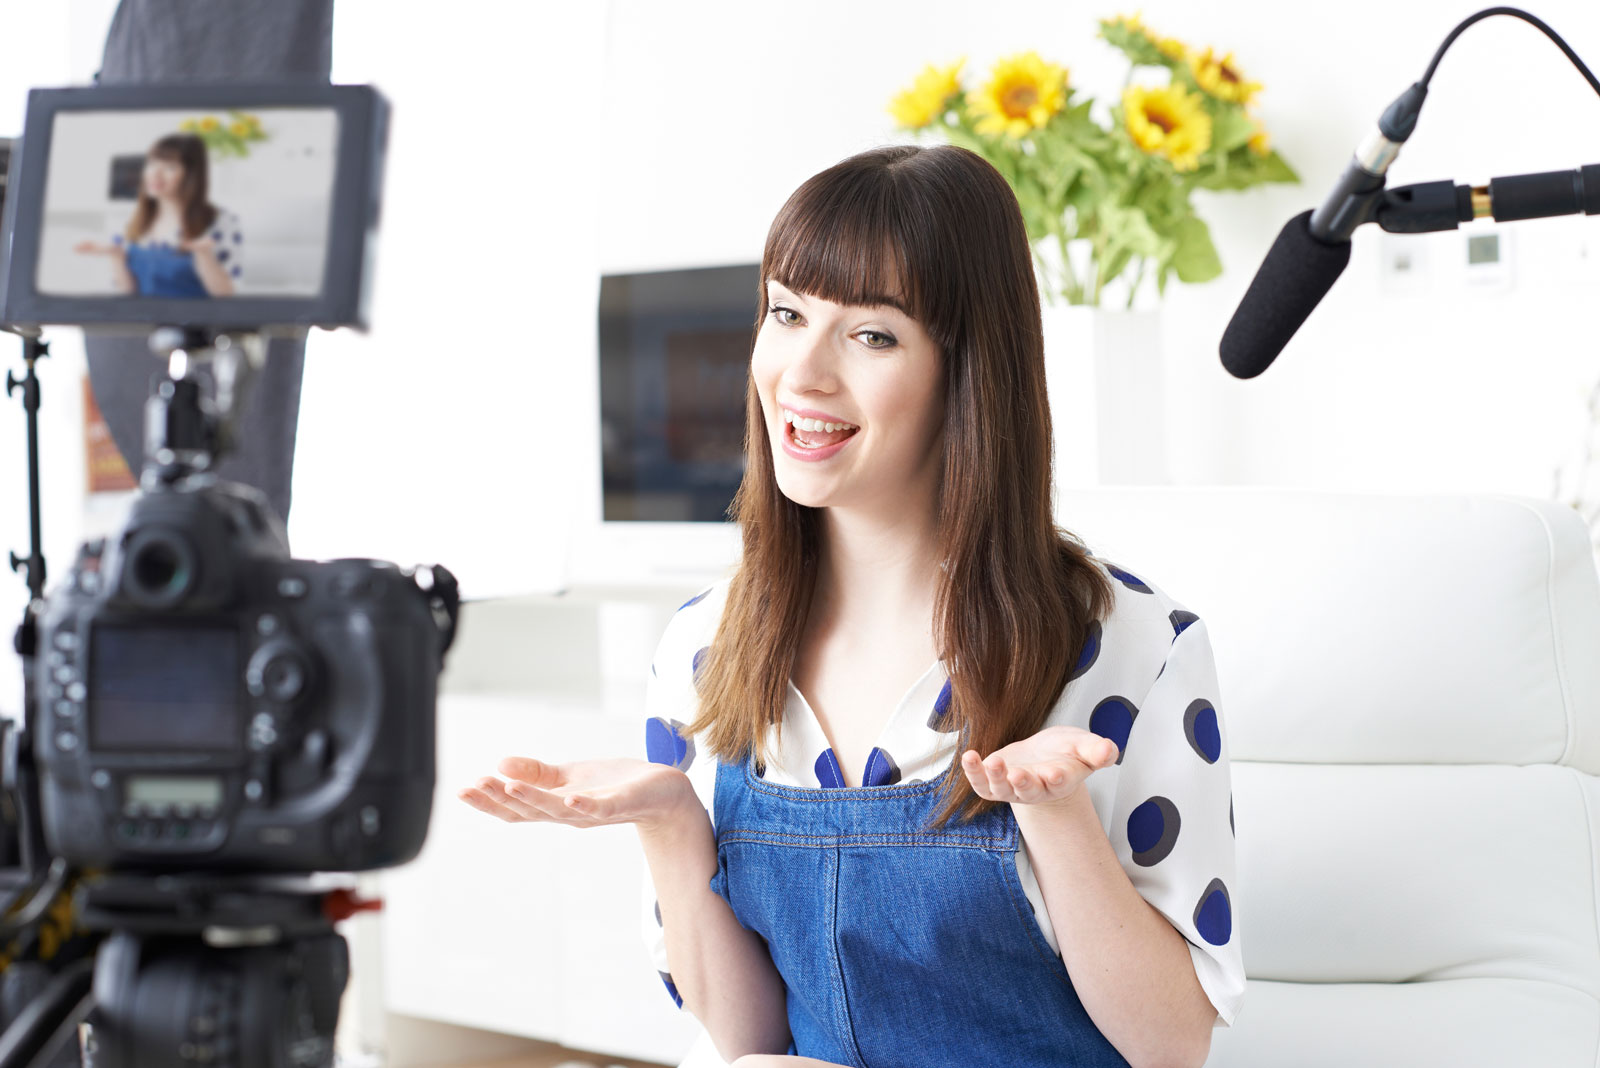 Woman In Front Of The Camera | Social Media Content: 5 Types That Get Massive Engagement